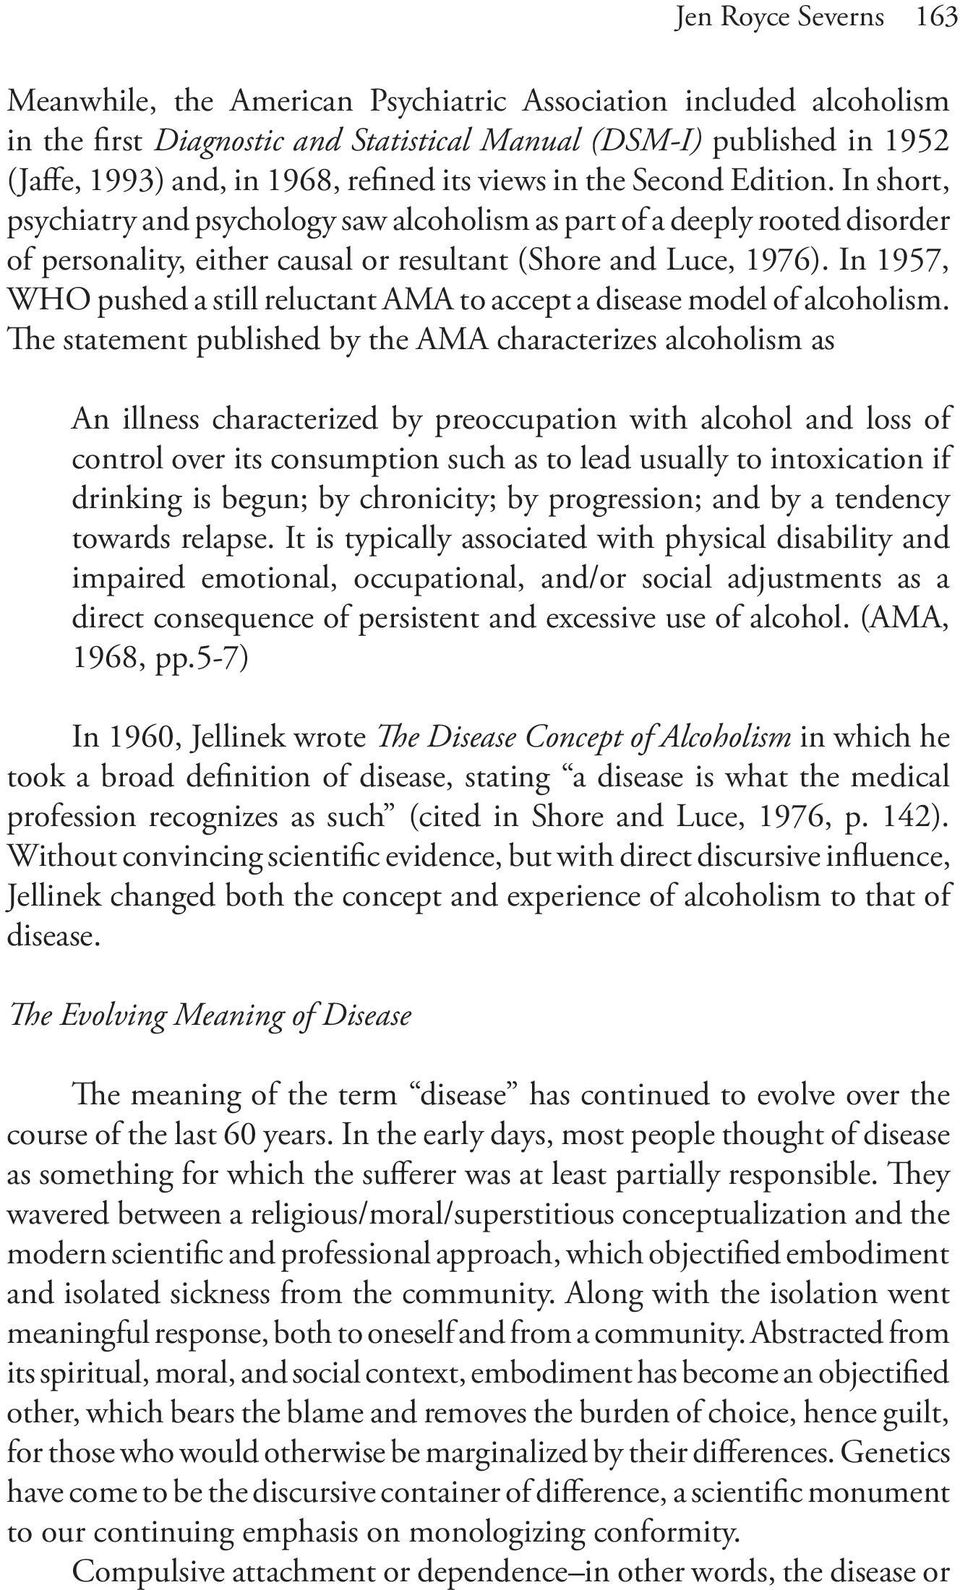 In 1957, WHO pushed a still reluctant AMA to accept a disease model of alcoholism.